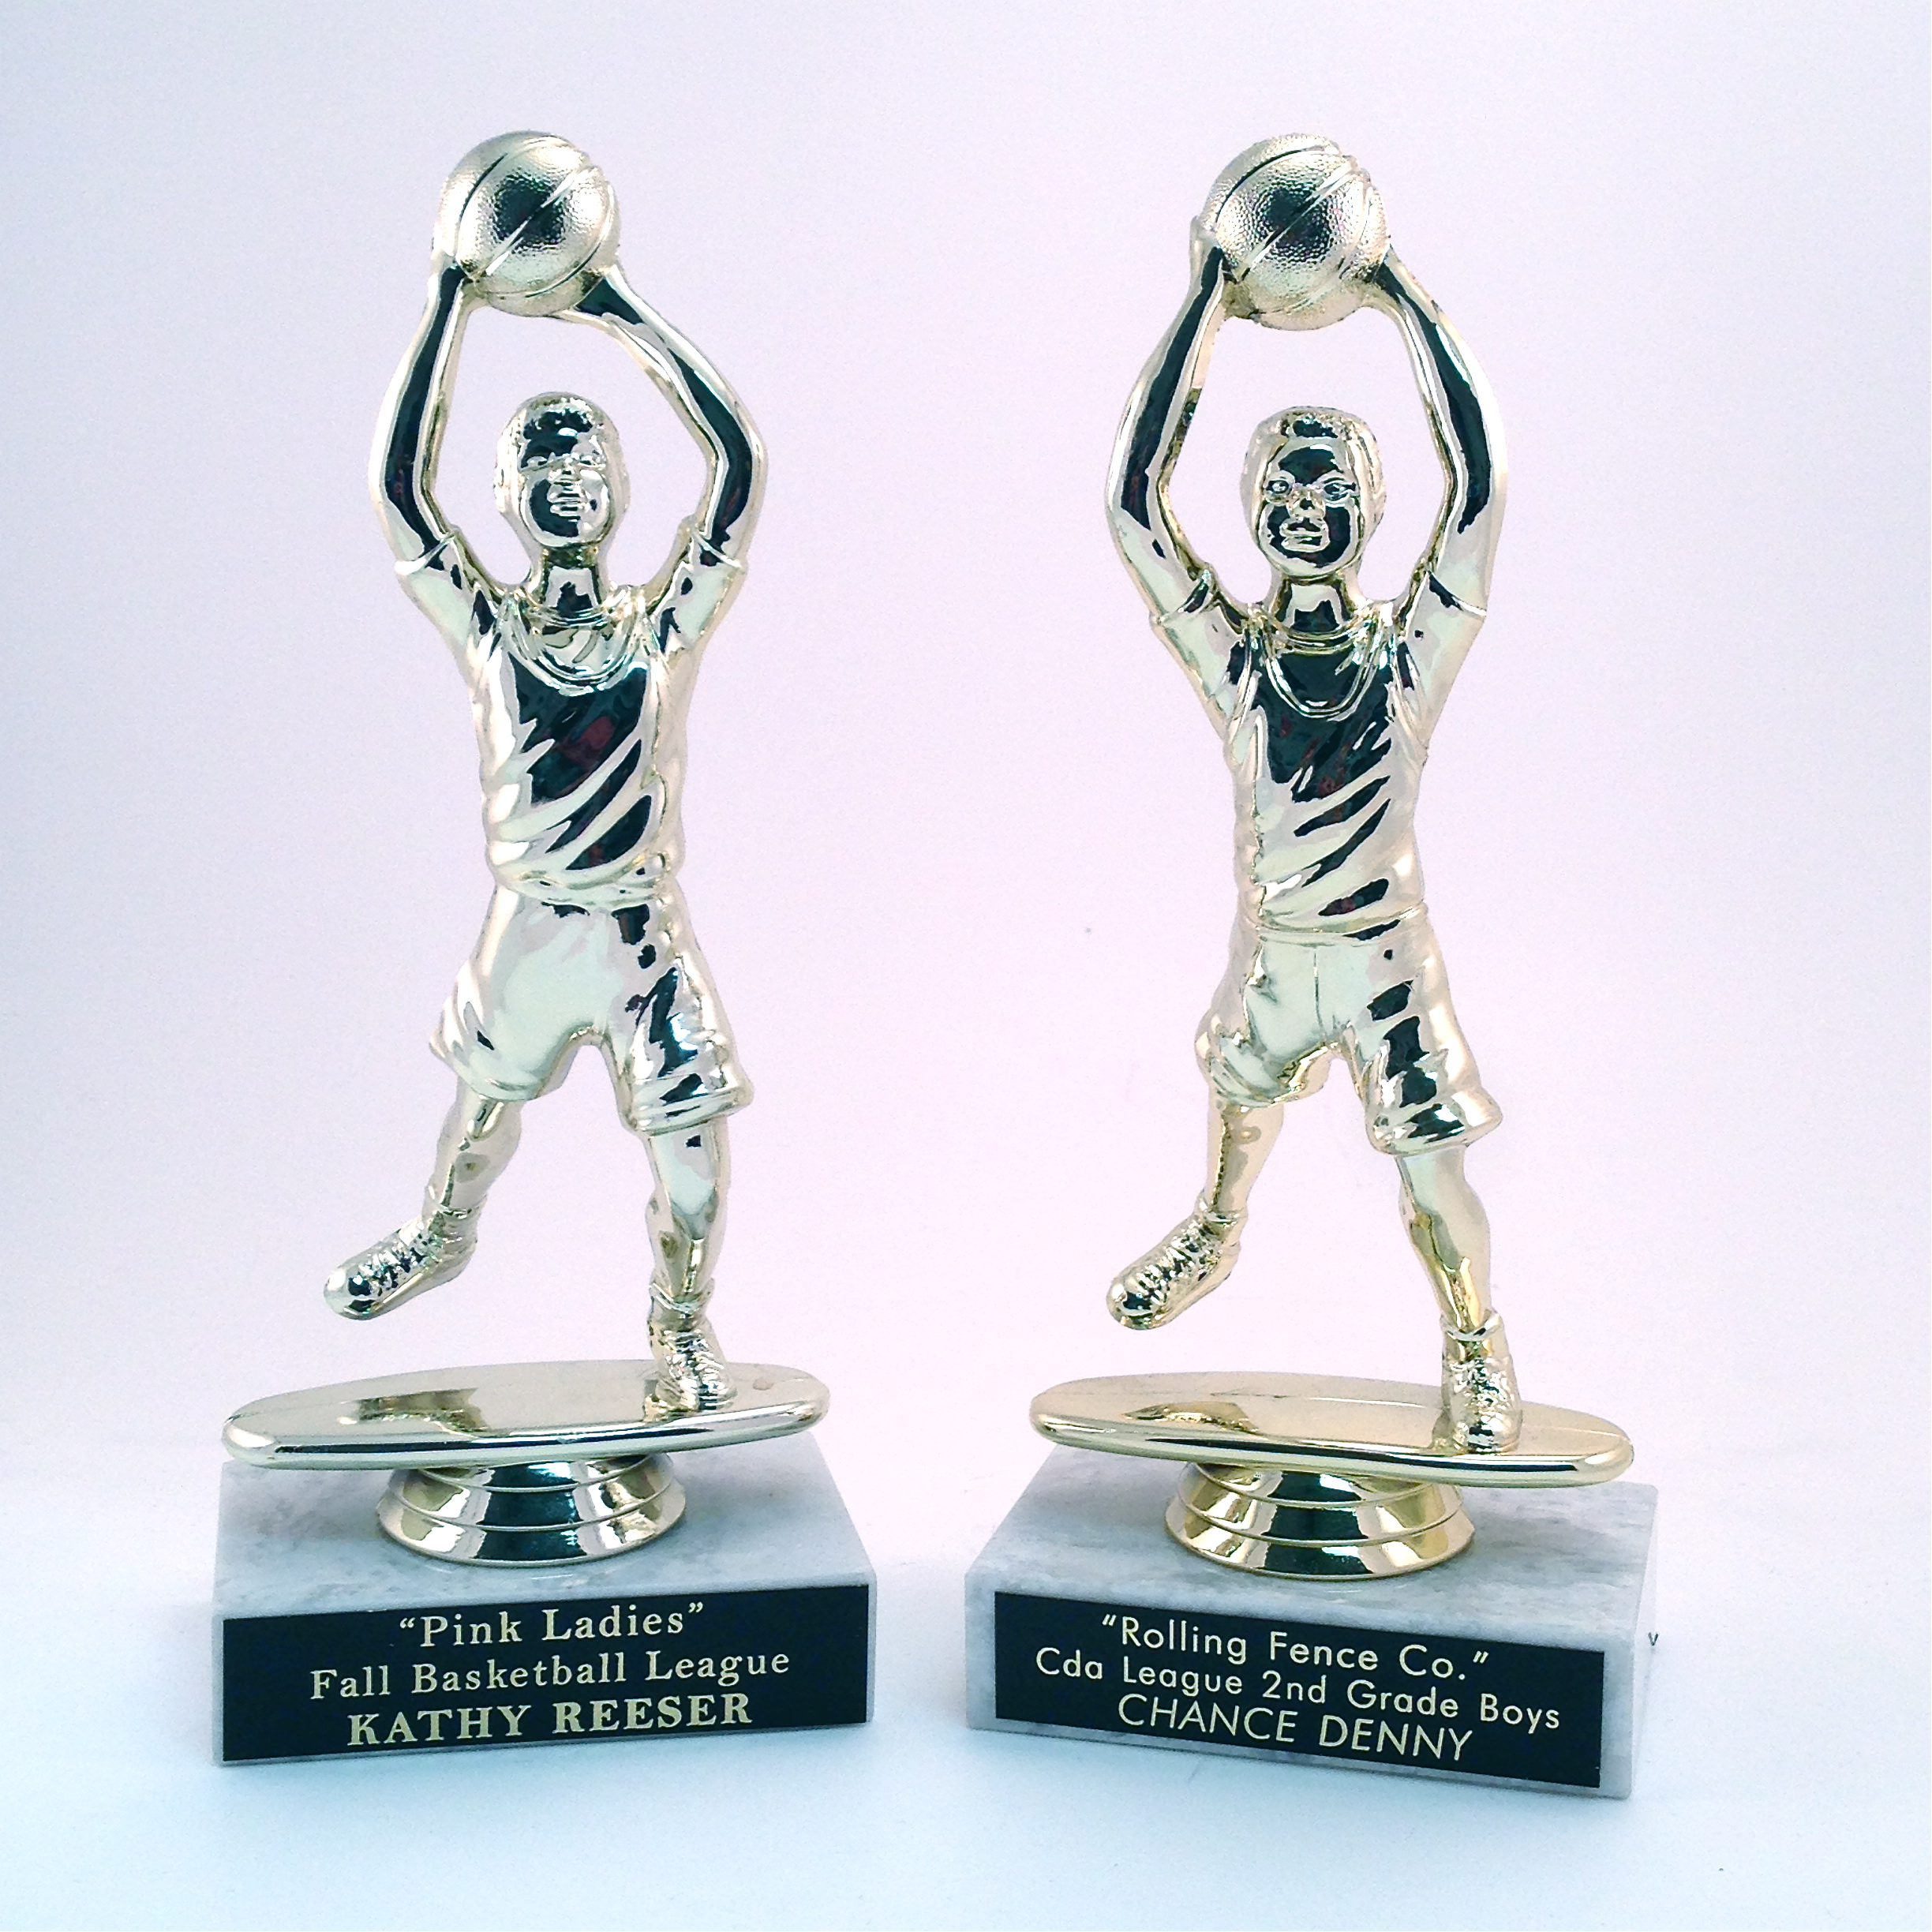 Premium Figure on a Marble Base -  $7.16 each  (Includes tax & engraving) Specify Male or Female. [ITEM#:  14K ]